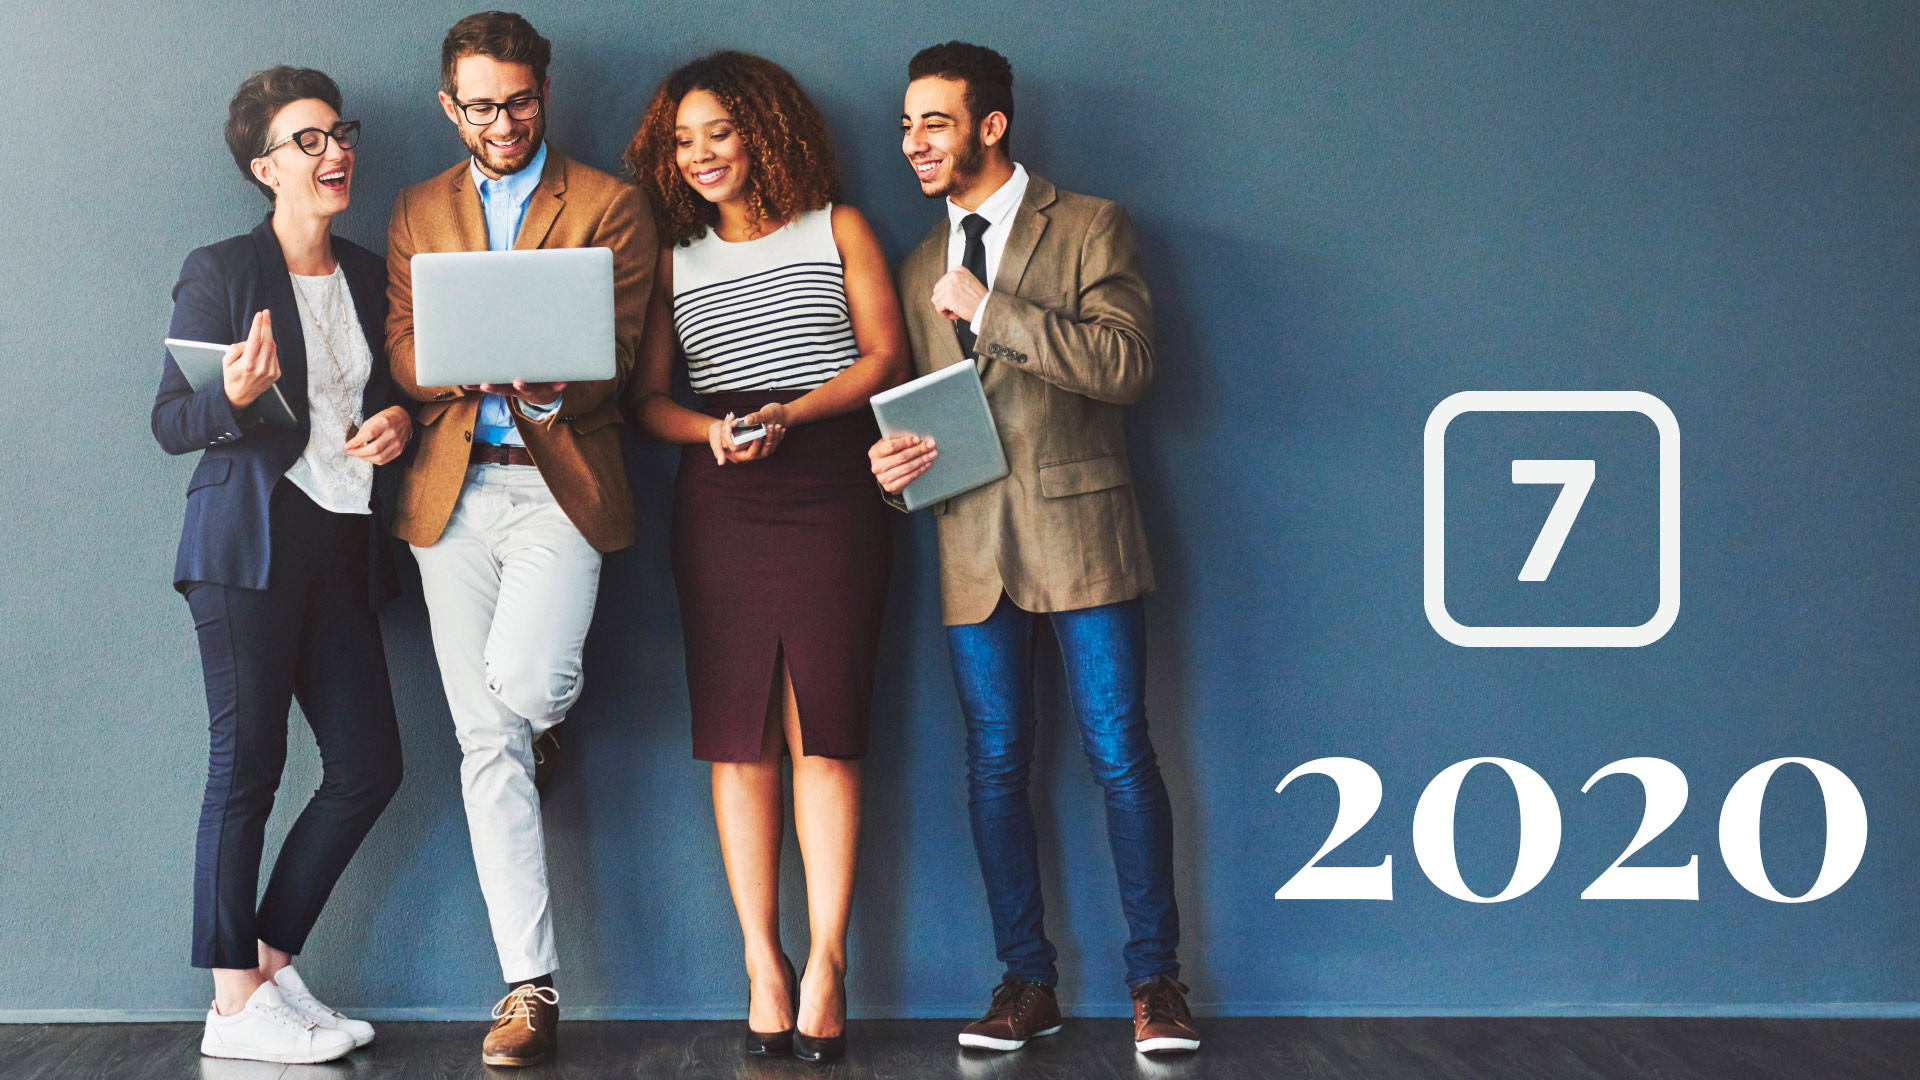 7 Best Virtual Classroom Software Solutions in 2020